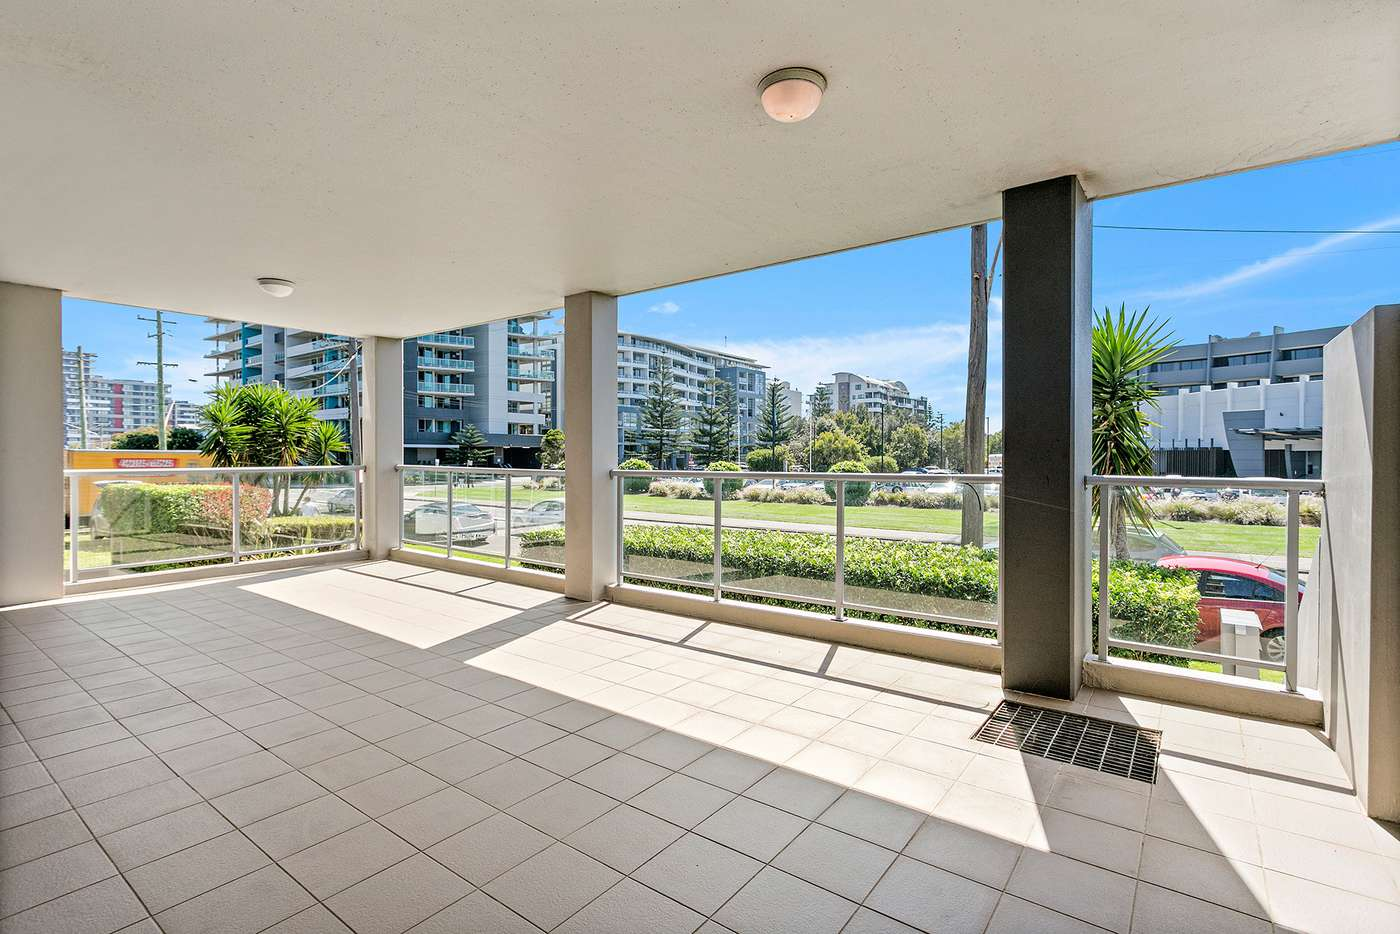 Seventh view of Homely apartment listing, 1/162 Corrimal Street, Wollongong NSW 2500